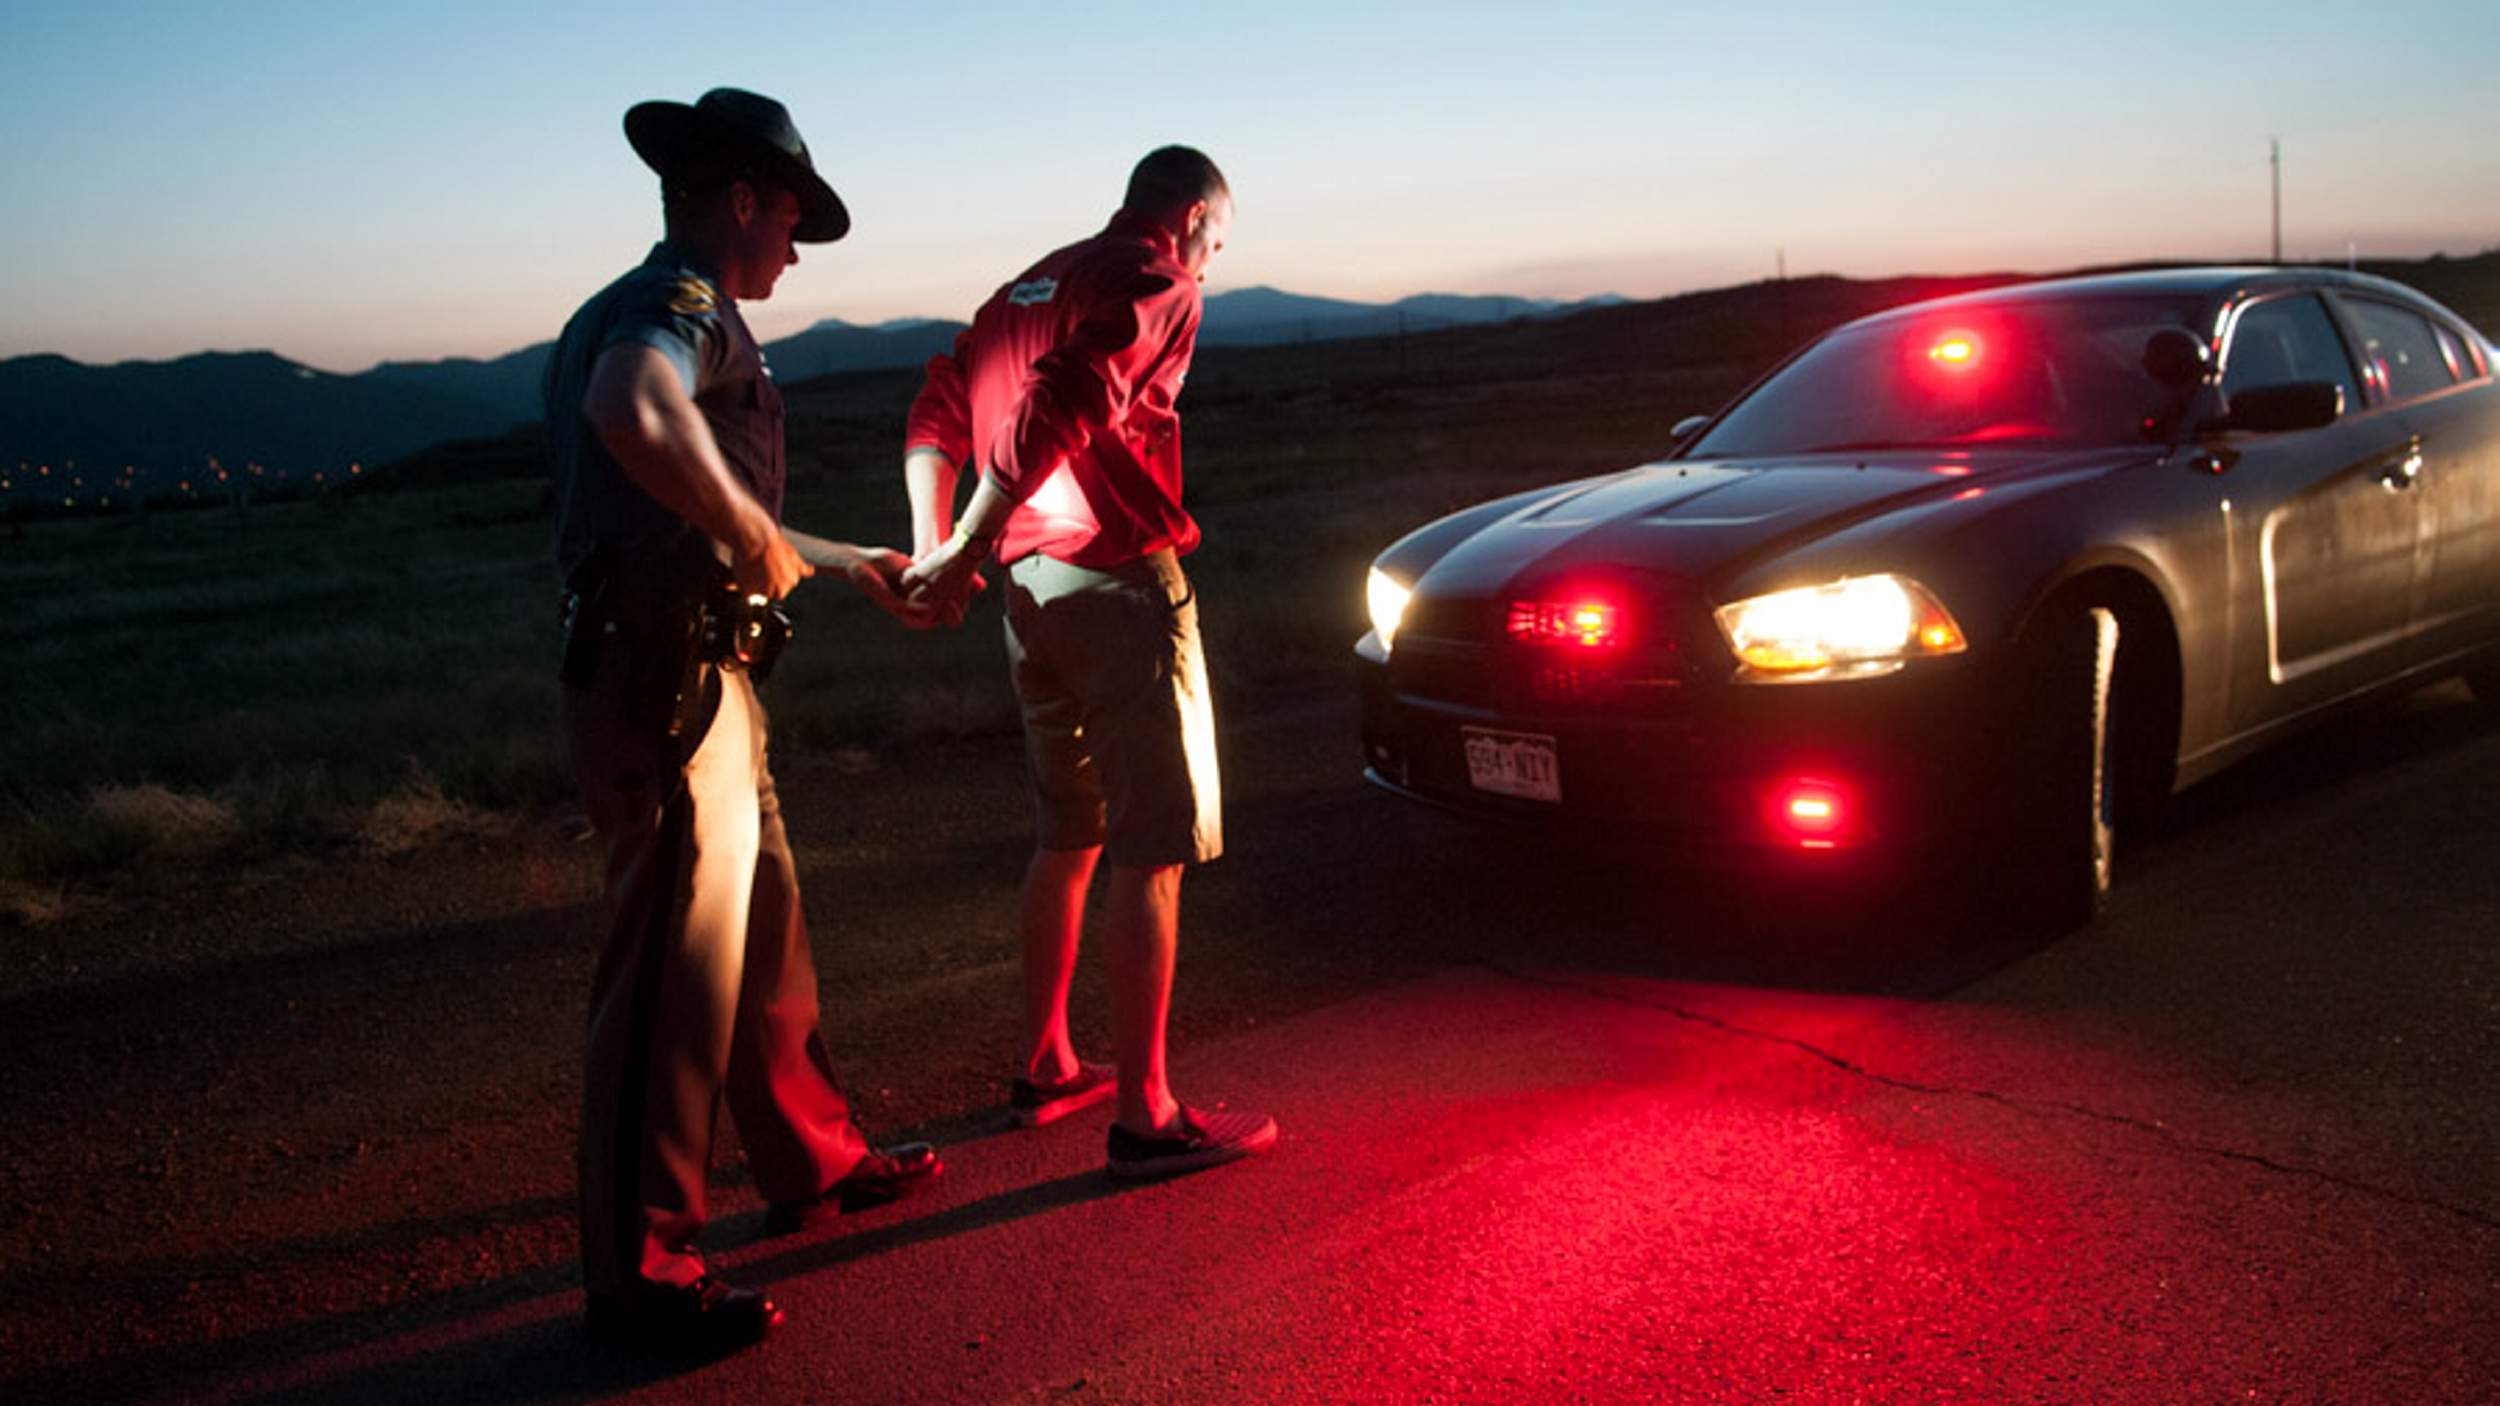 State police prepare for 'Trooper Bowl' Sunday to safeguard against impaired drivers